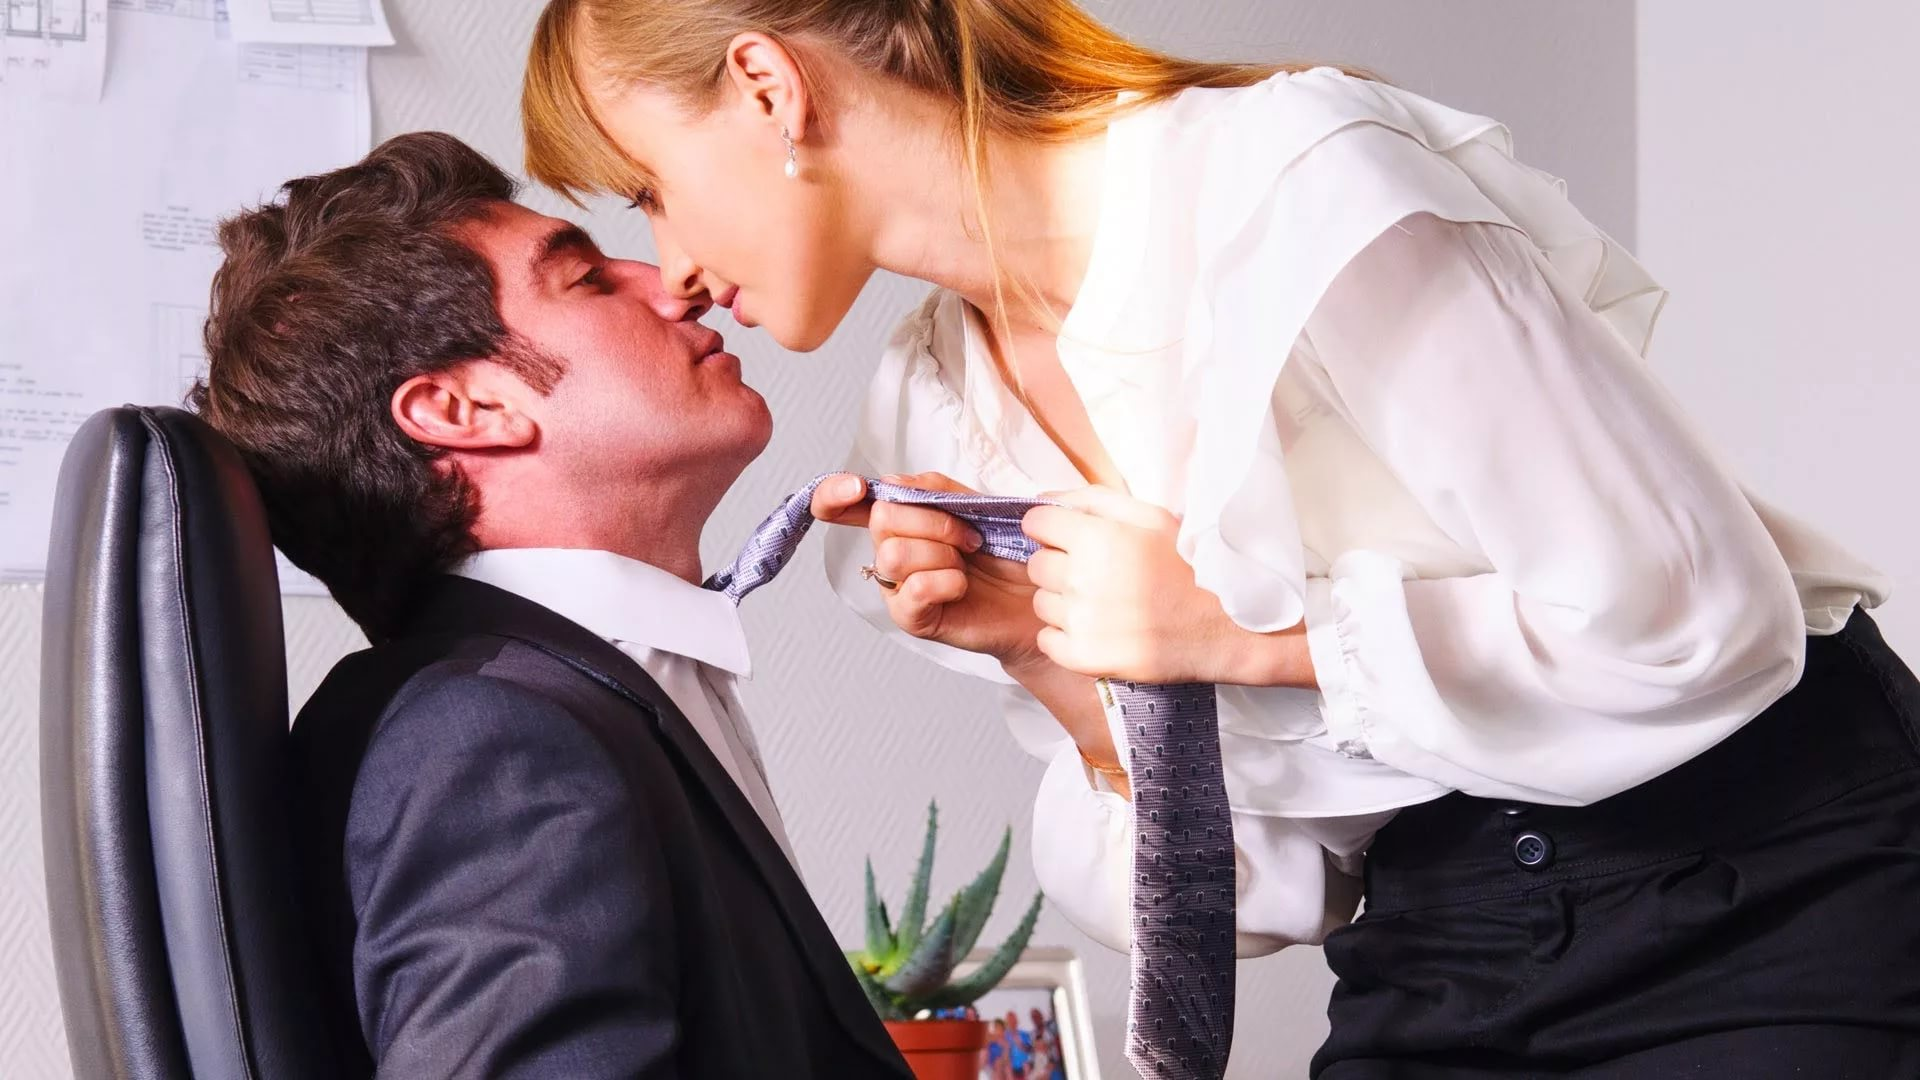 Office oral sex